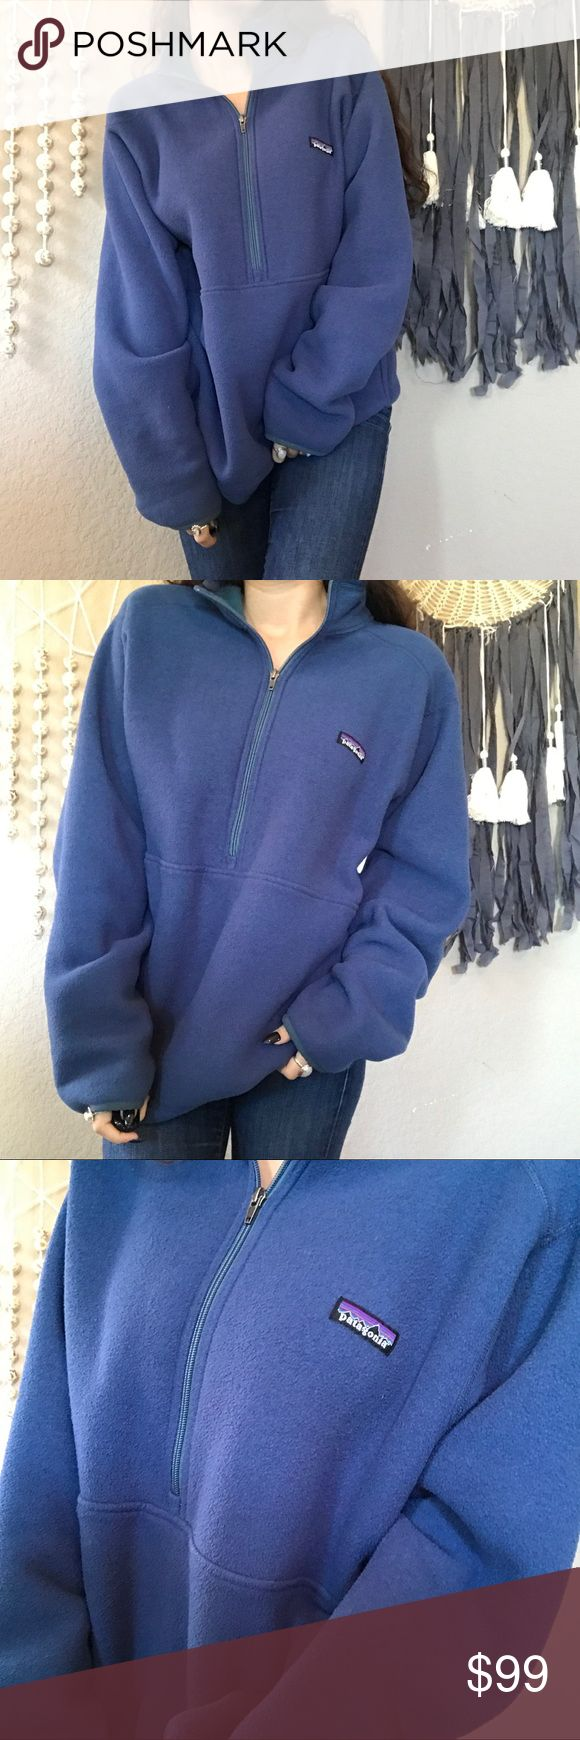 Patagonia half zip fleece pullover MENS SIZE L- listed as women's because this is how I wear it- and how many girls like to.  ⚡️NO trades  ⚡️open to ALL offers!  ⚡️ bundle for MAJOR discounts!  ⚡️feel free to ask any questions ⚡️ I will not respond to offers in the comments, please use the offer button for all offers.  ⚡️model is 5'7 and typically wears a small/26.  ⚡️All sales are final and all offers are binding.  ⚡️ If I miss your comment, please comment again! Patagonia Sweaters Cowl…